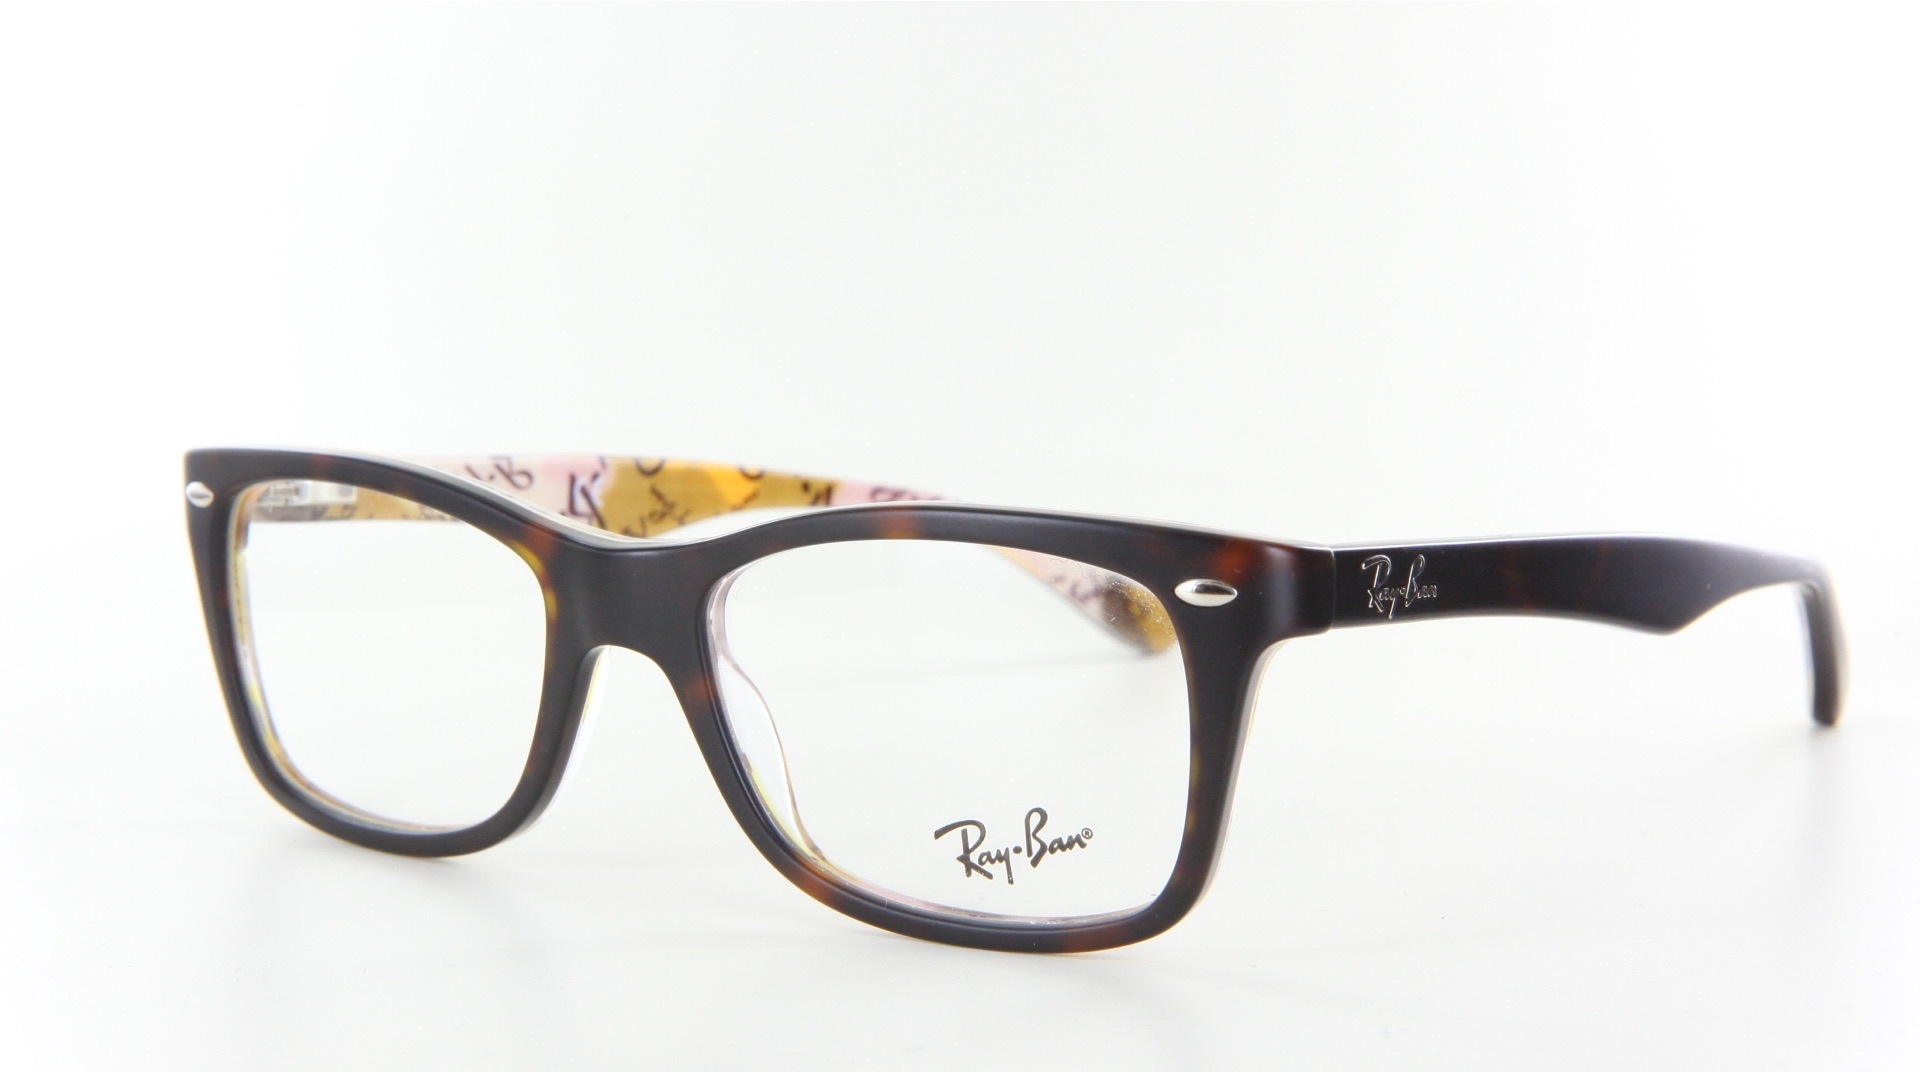 Ray-Ban - ref: 71642